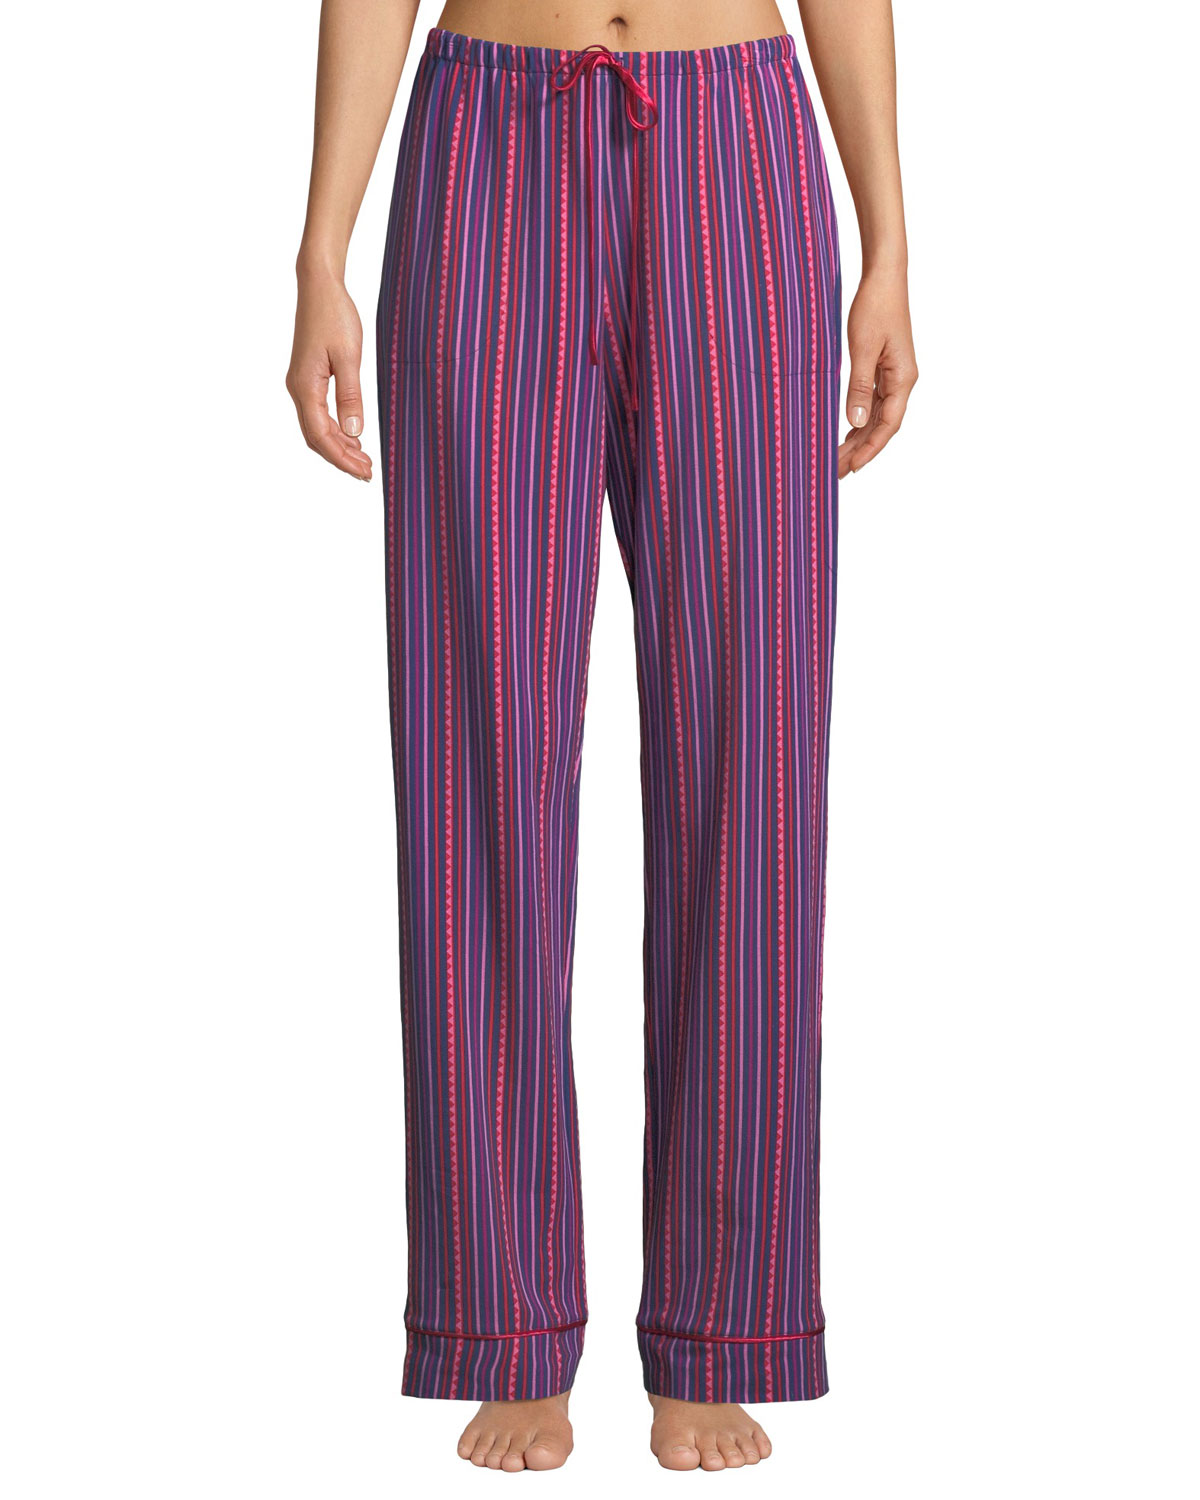 BEDHEAD Party Stripe Classic Pajama Pants in Pink Pattern